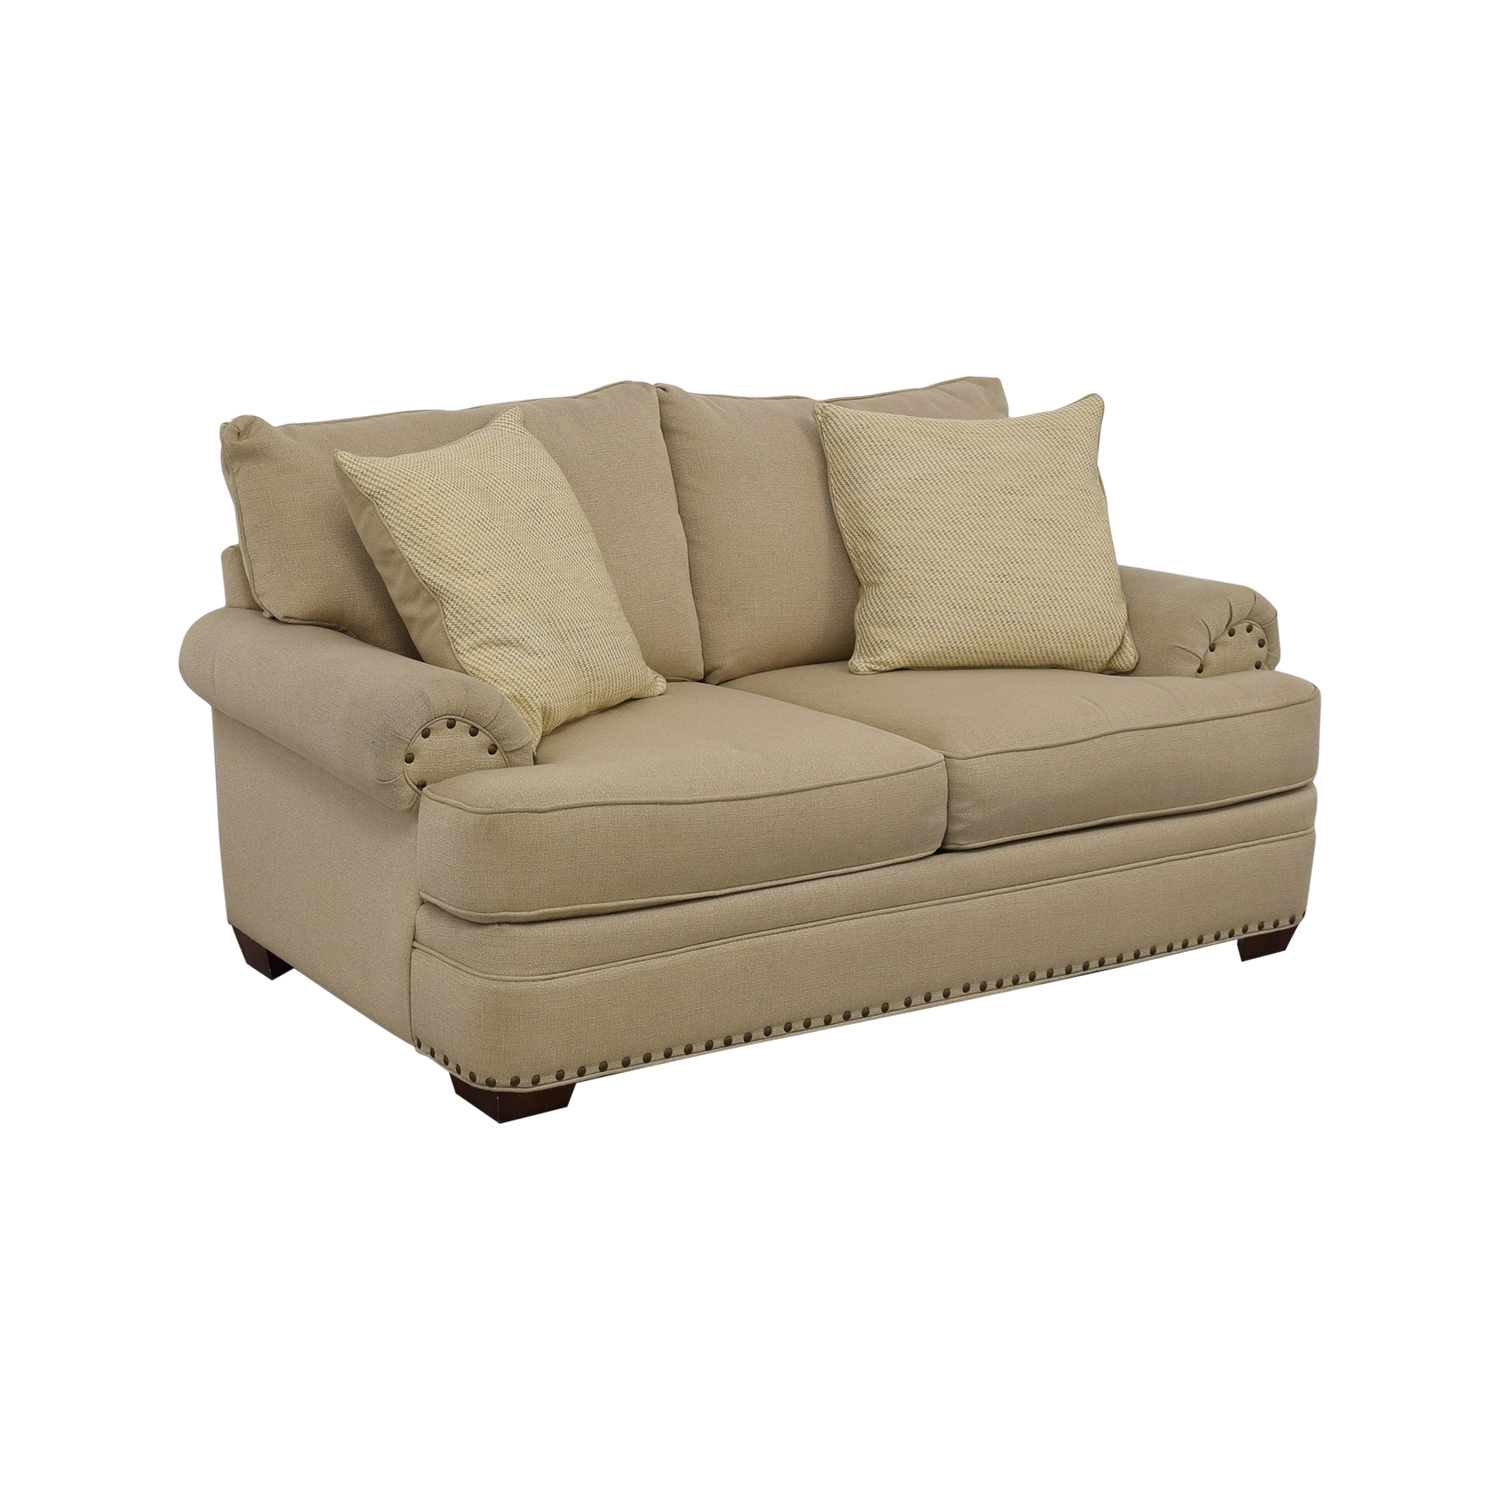 Havertys Havertys Oatmeal Jillian Loveseat nyc